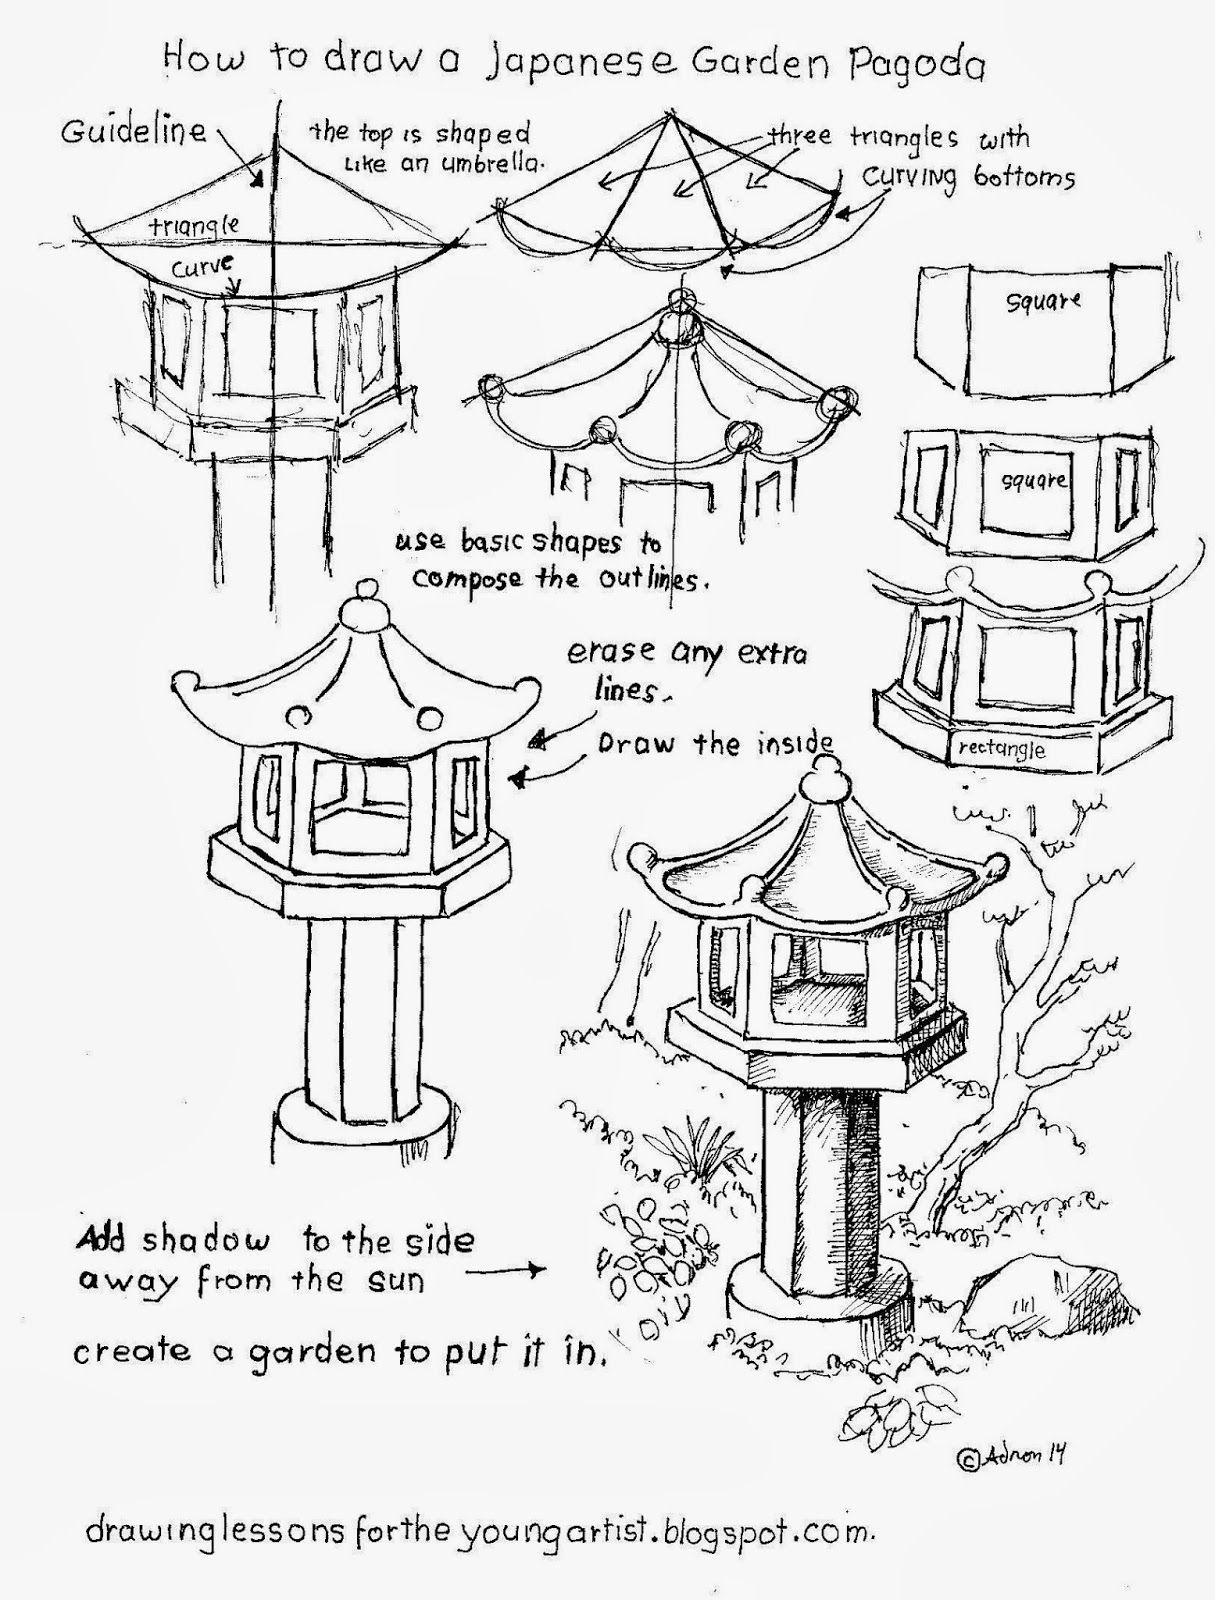 How to draw a garden pagoda worksheet See more at my blogger